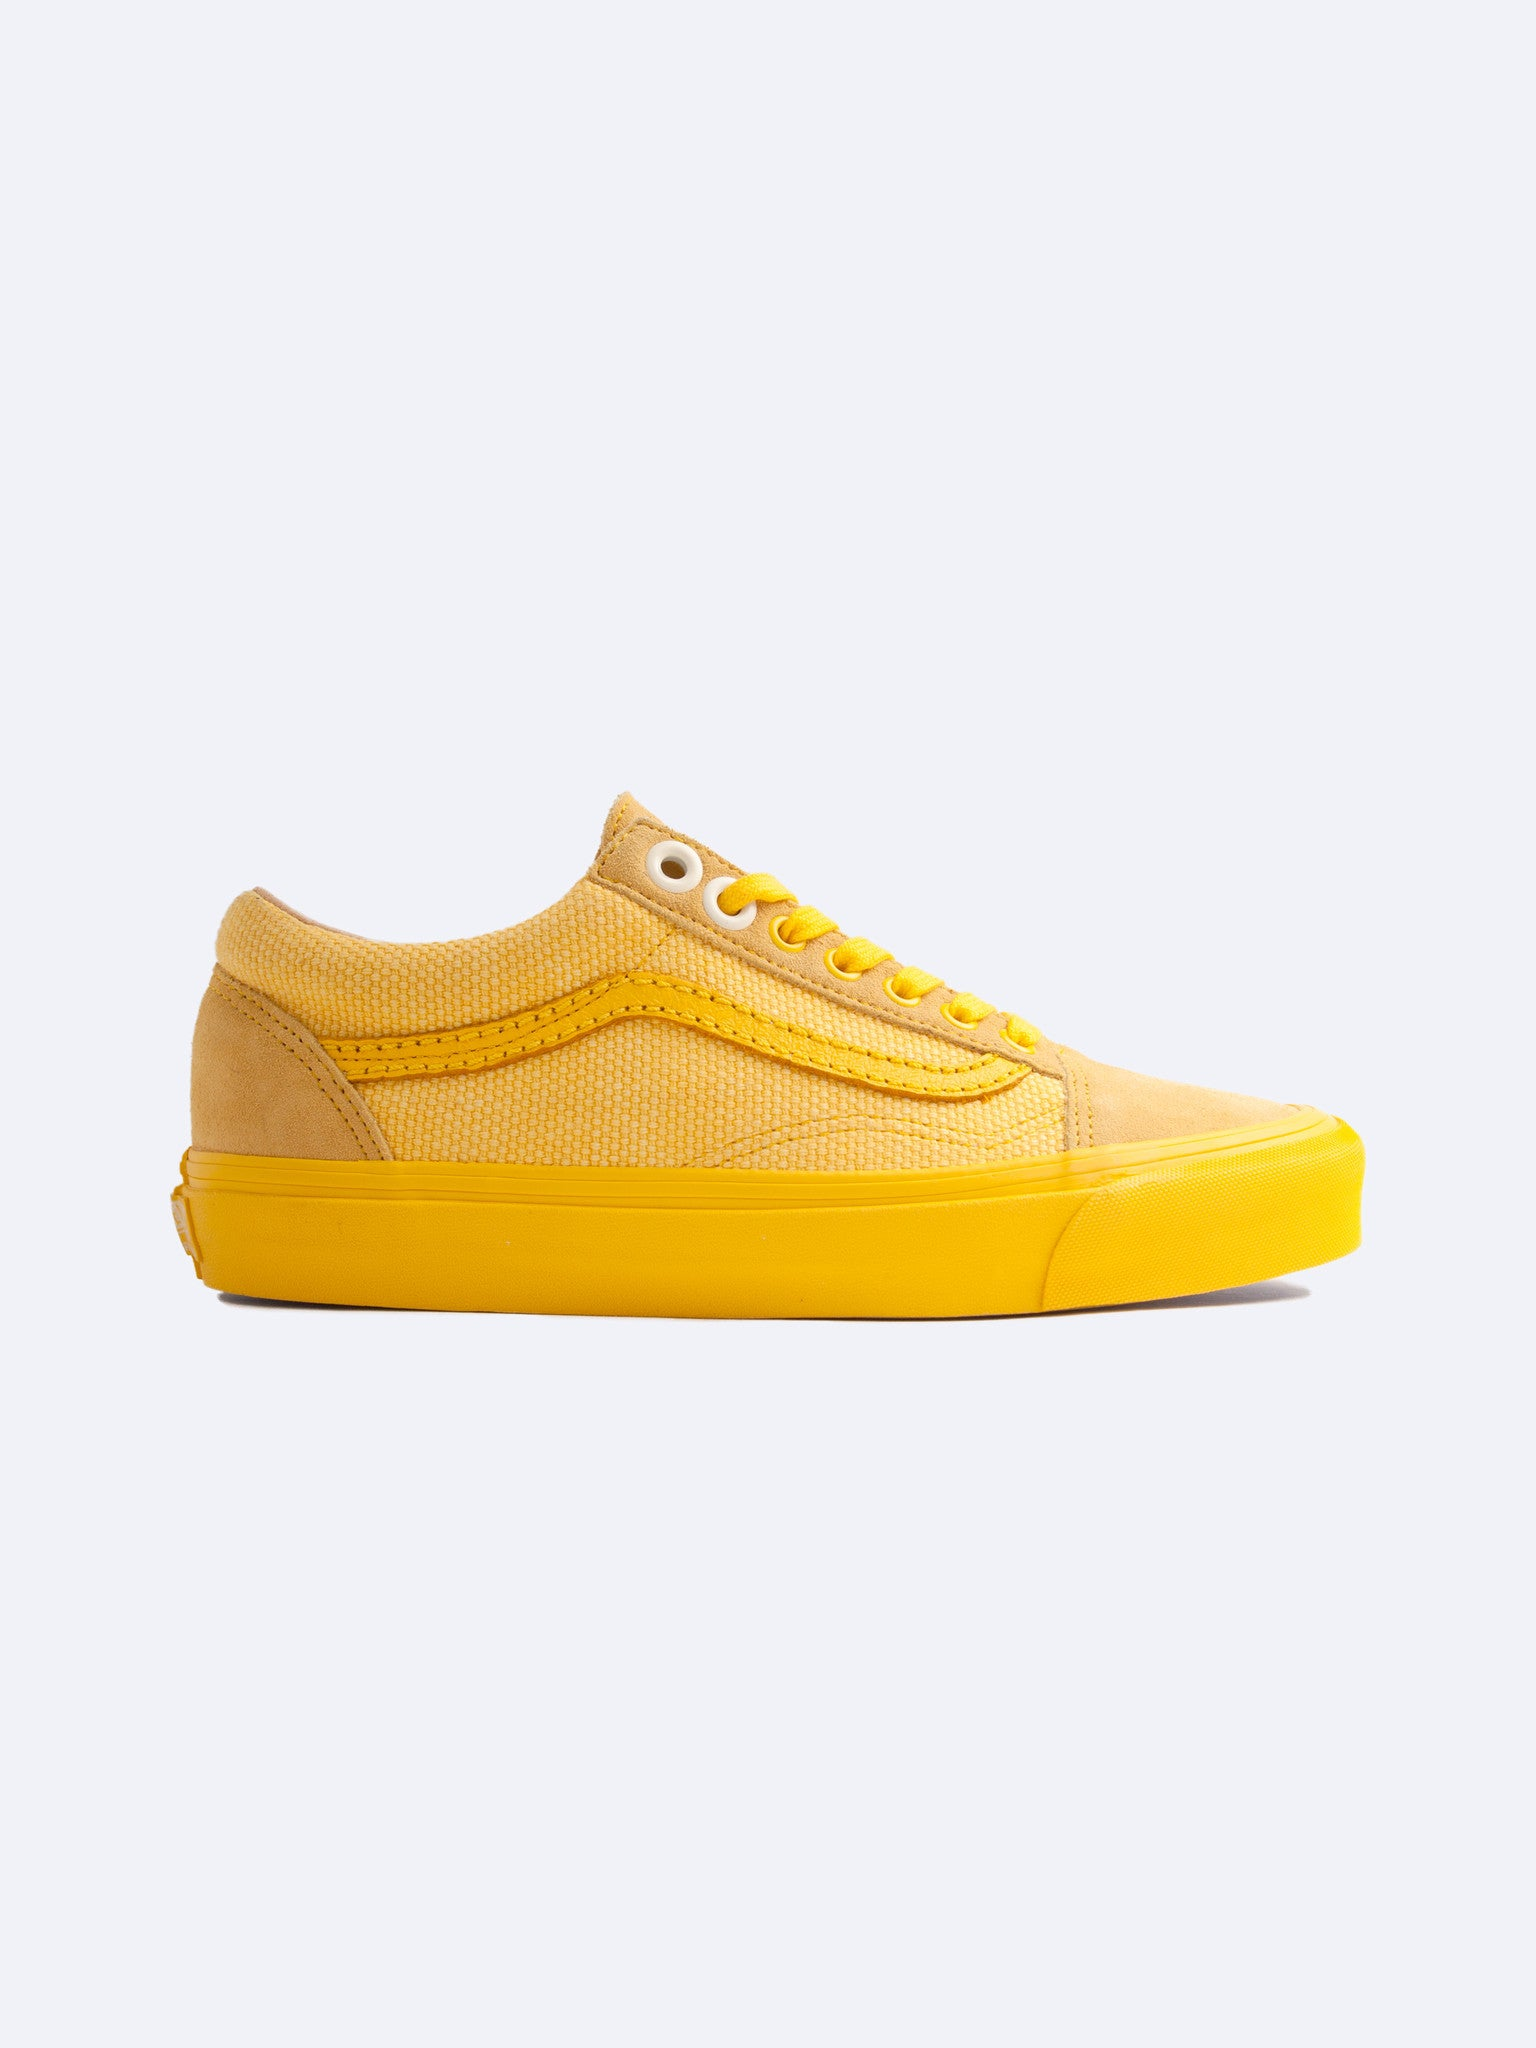 Citrus Vans Vault Old Skool (UNION) - Citrus 1